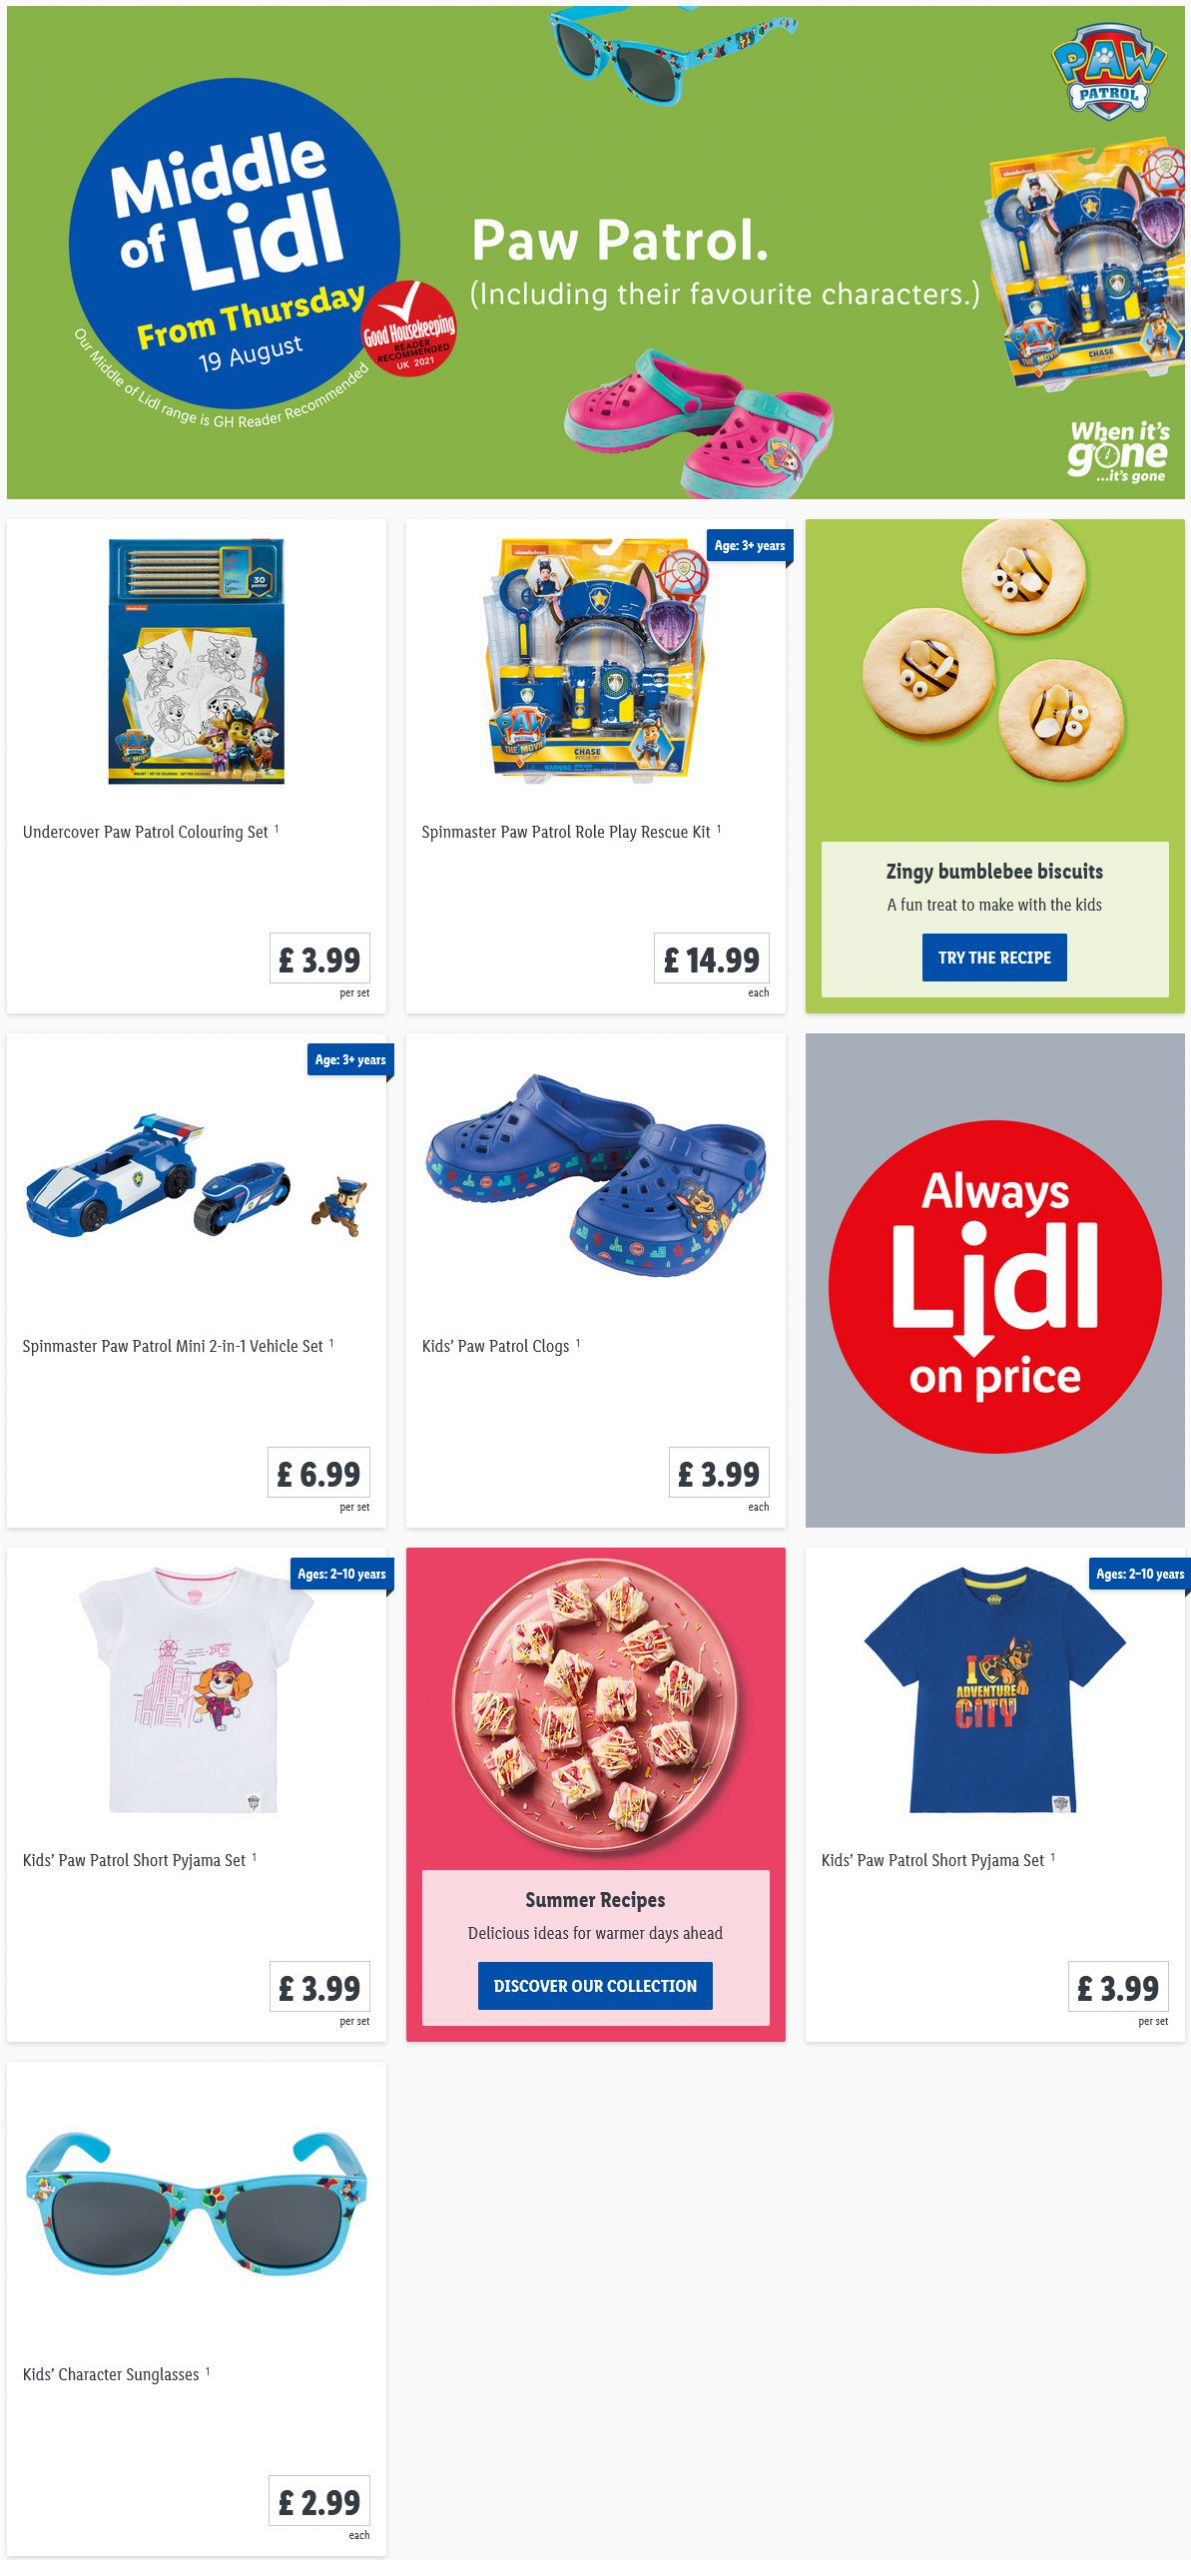 LiDL Paw Patrol From 19th August 2021 LIDL Offers this Thursday